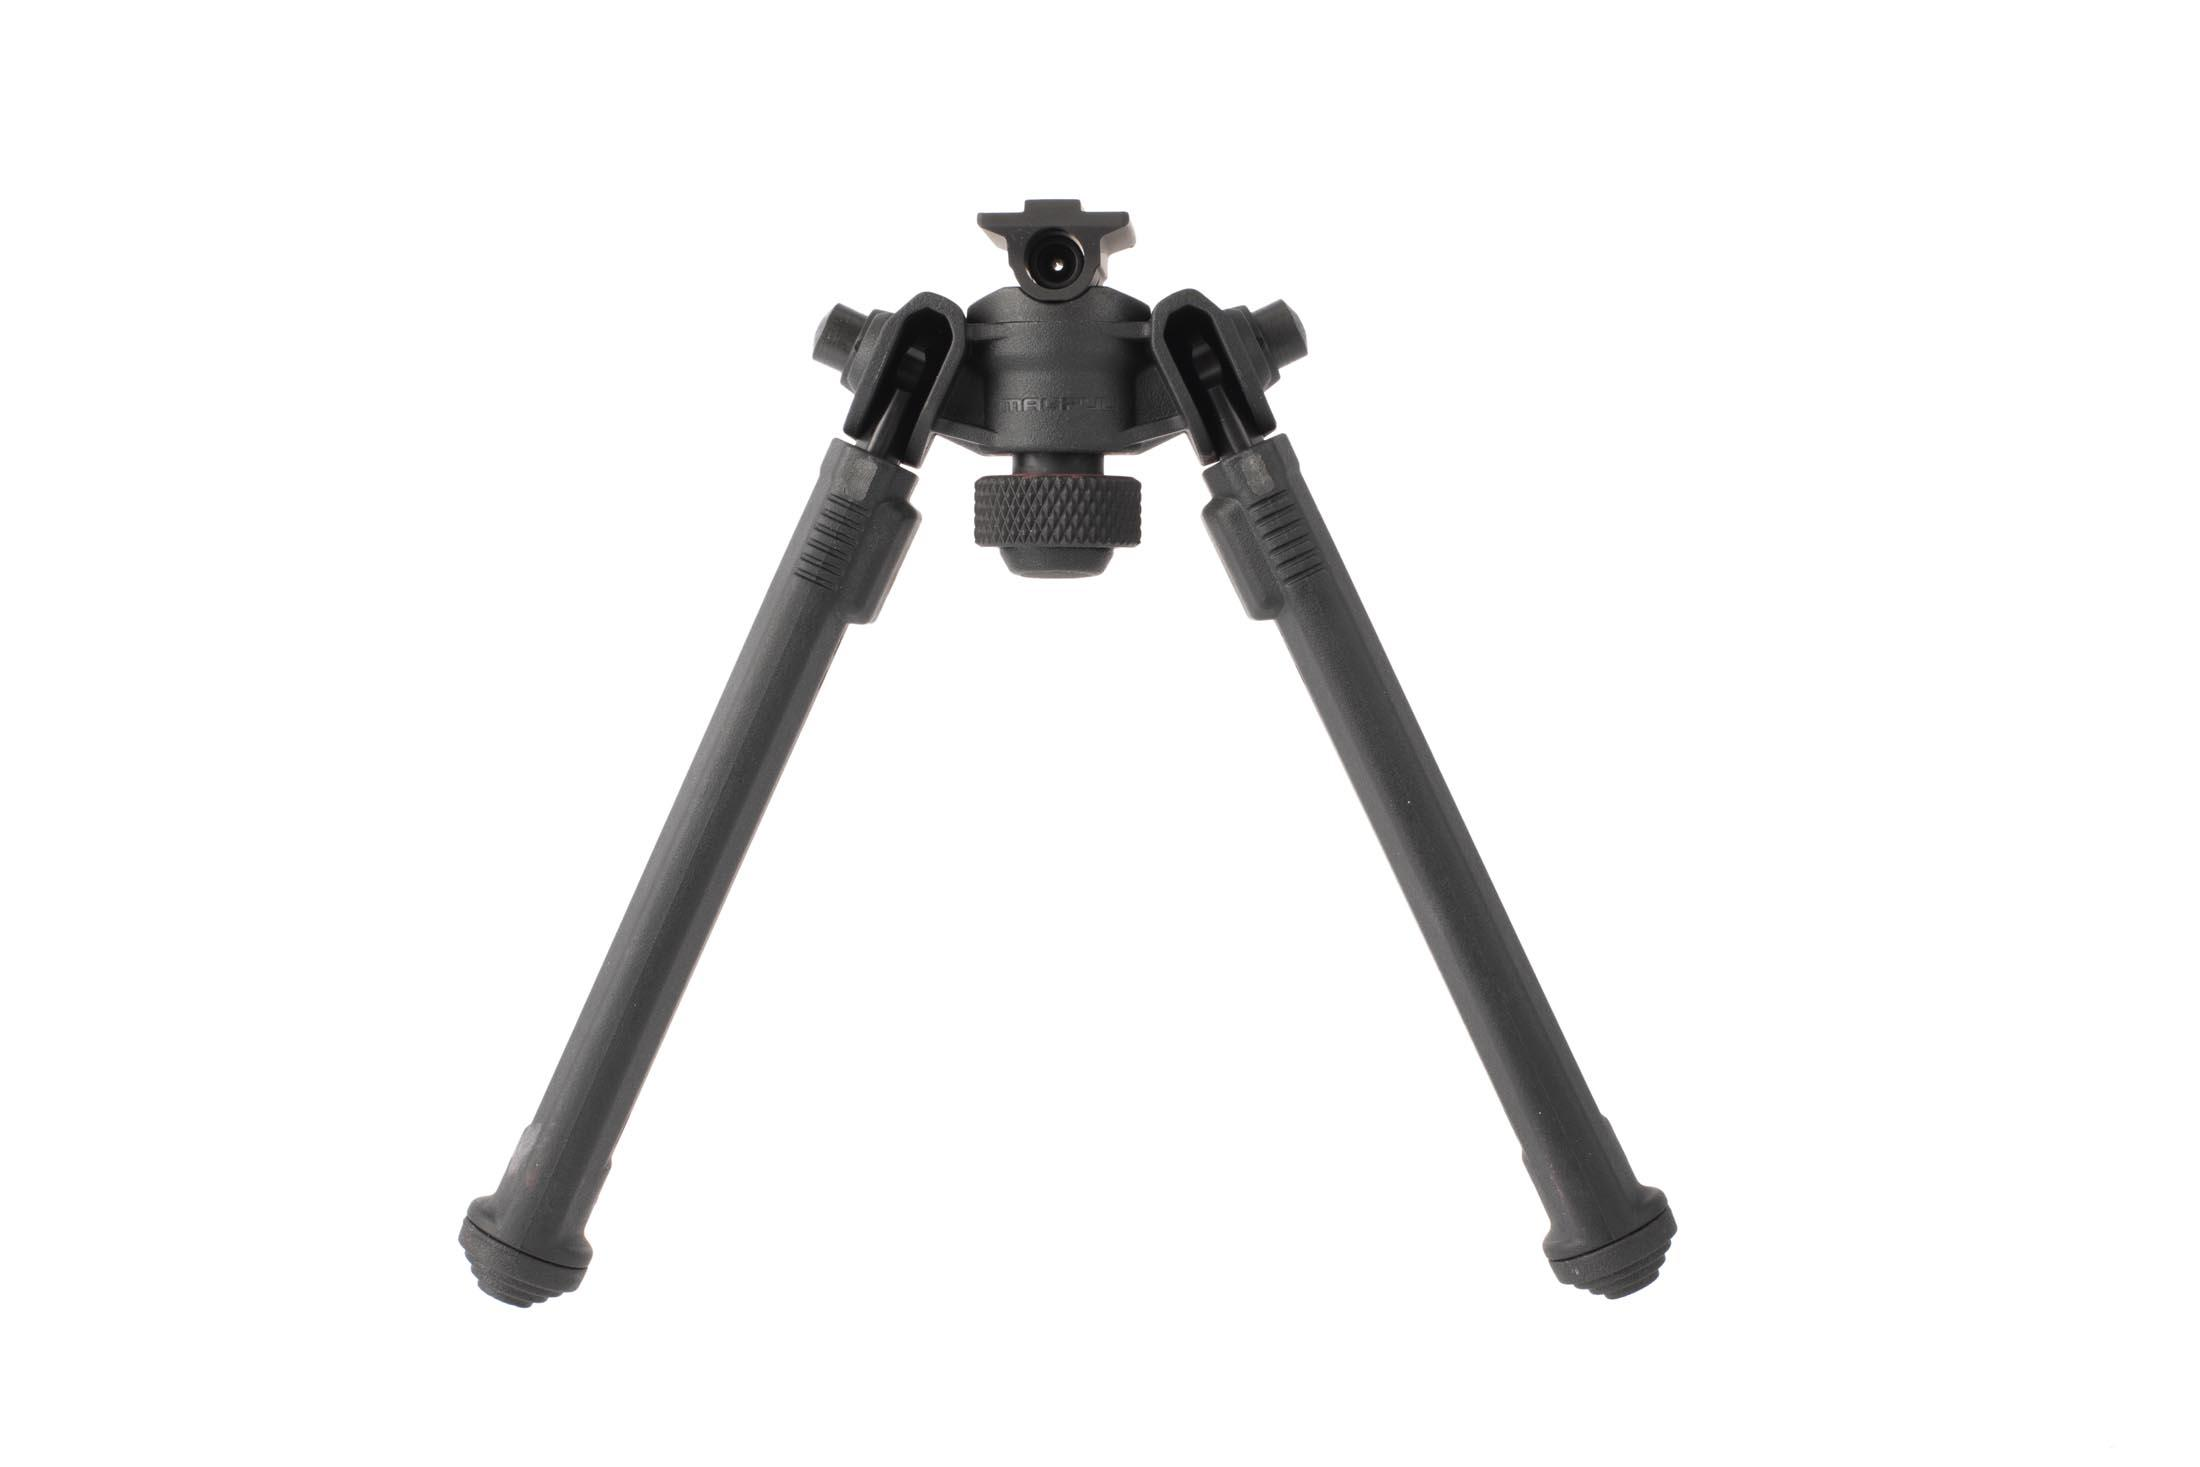 Magpul black A.R.M.S. 17S compatible bipods have adjustable pan and tilt with adjustable length legs with stepped polymer feet for stability